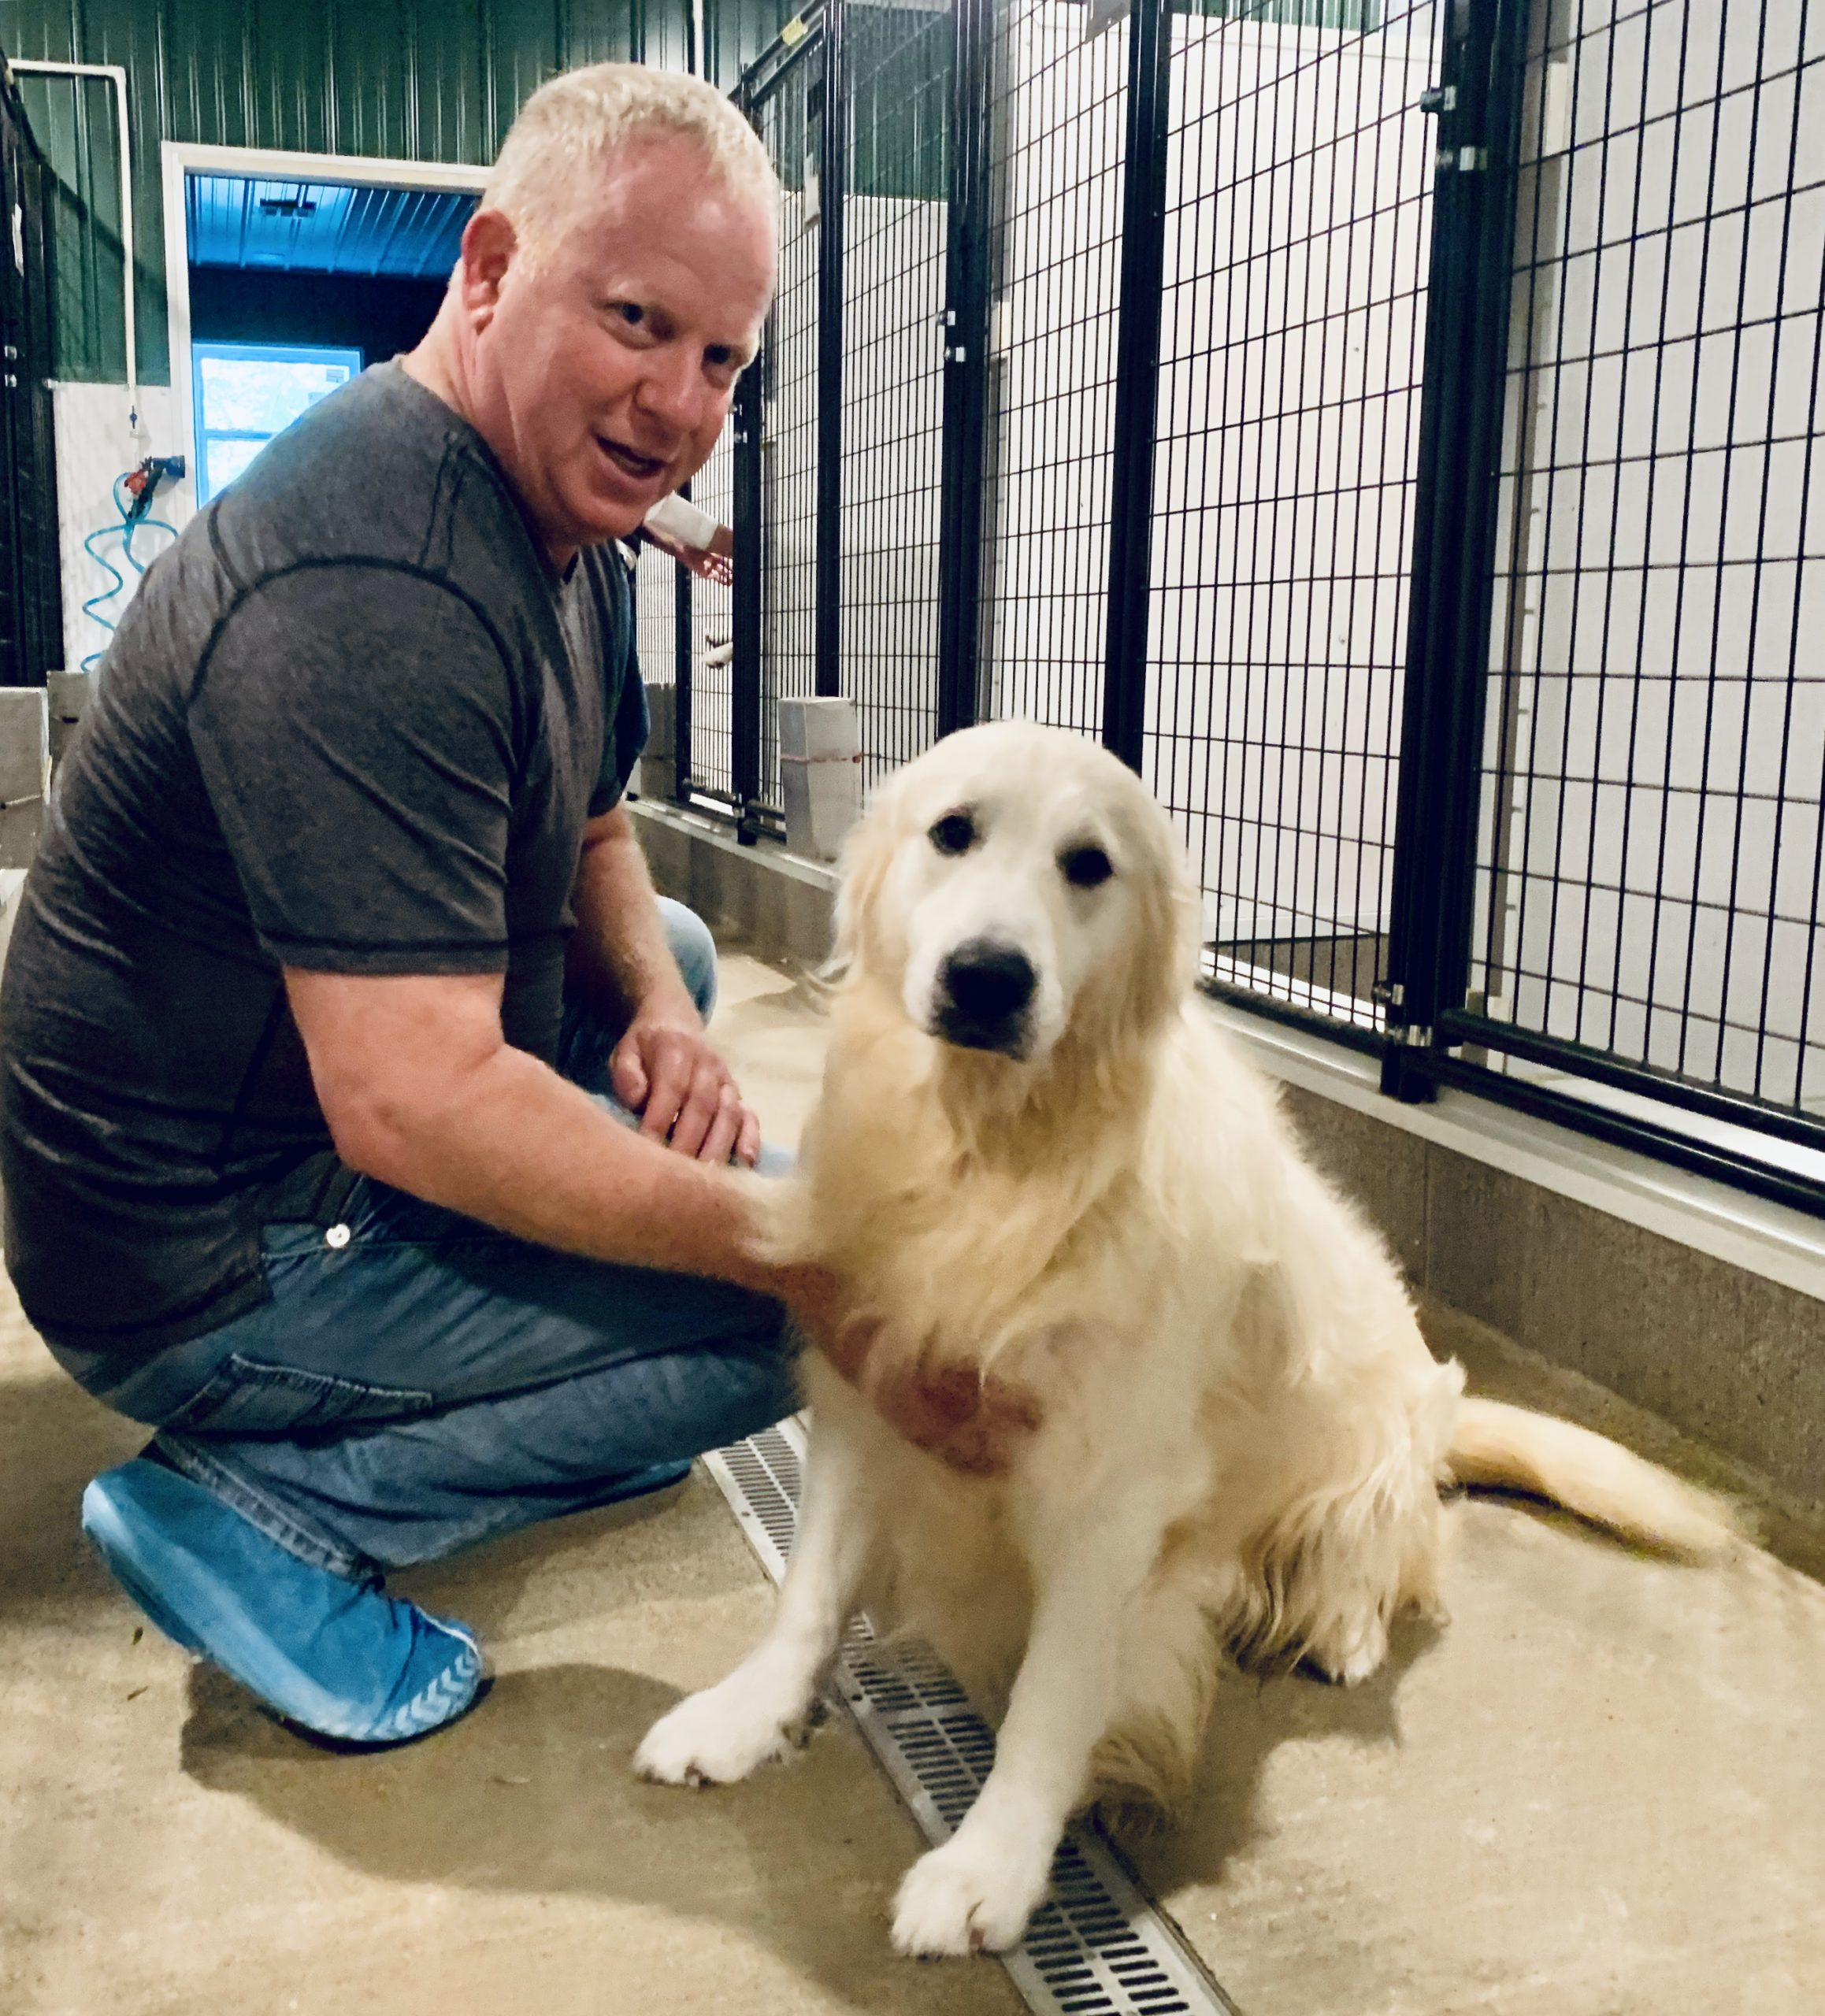 Frank Mineo Jr. with Golden dog